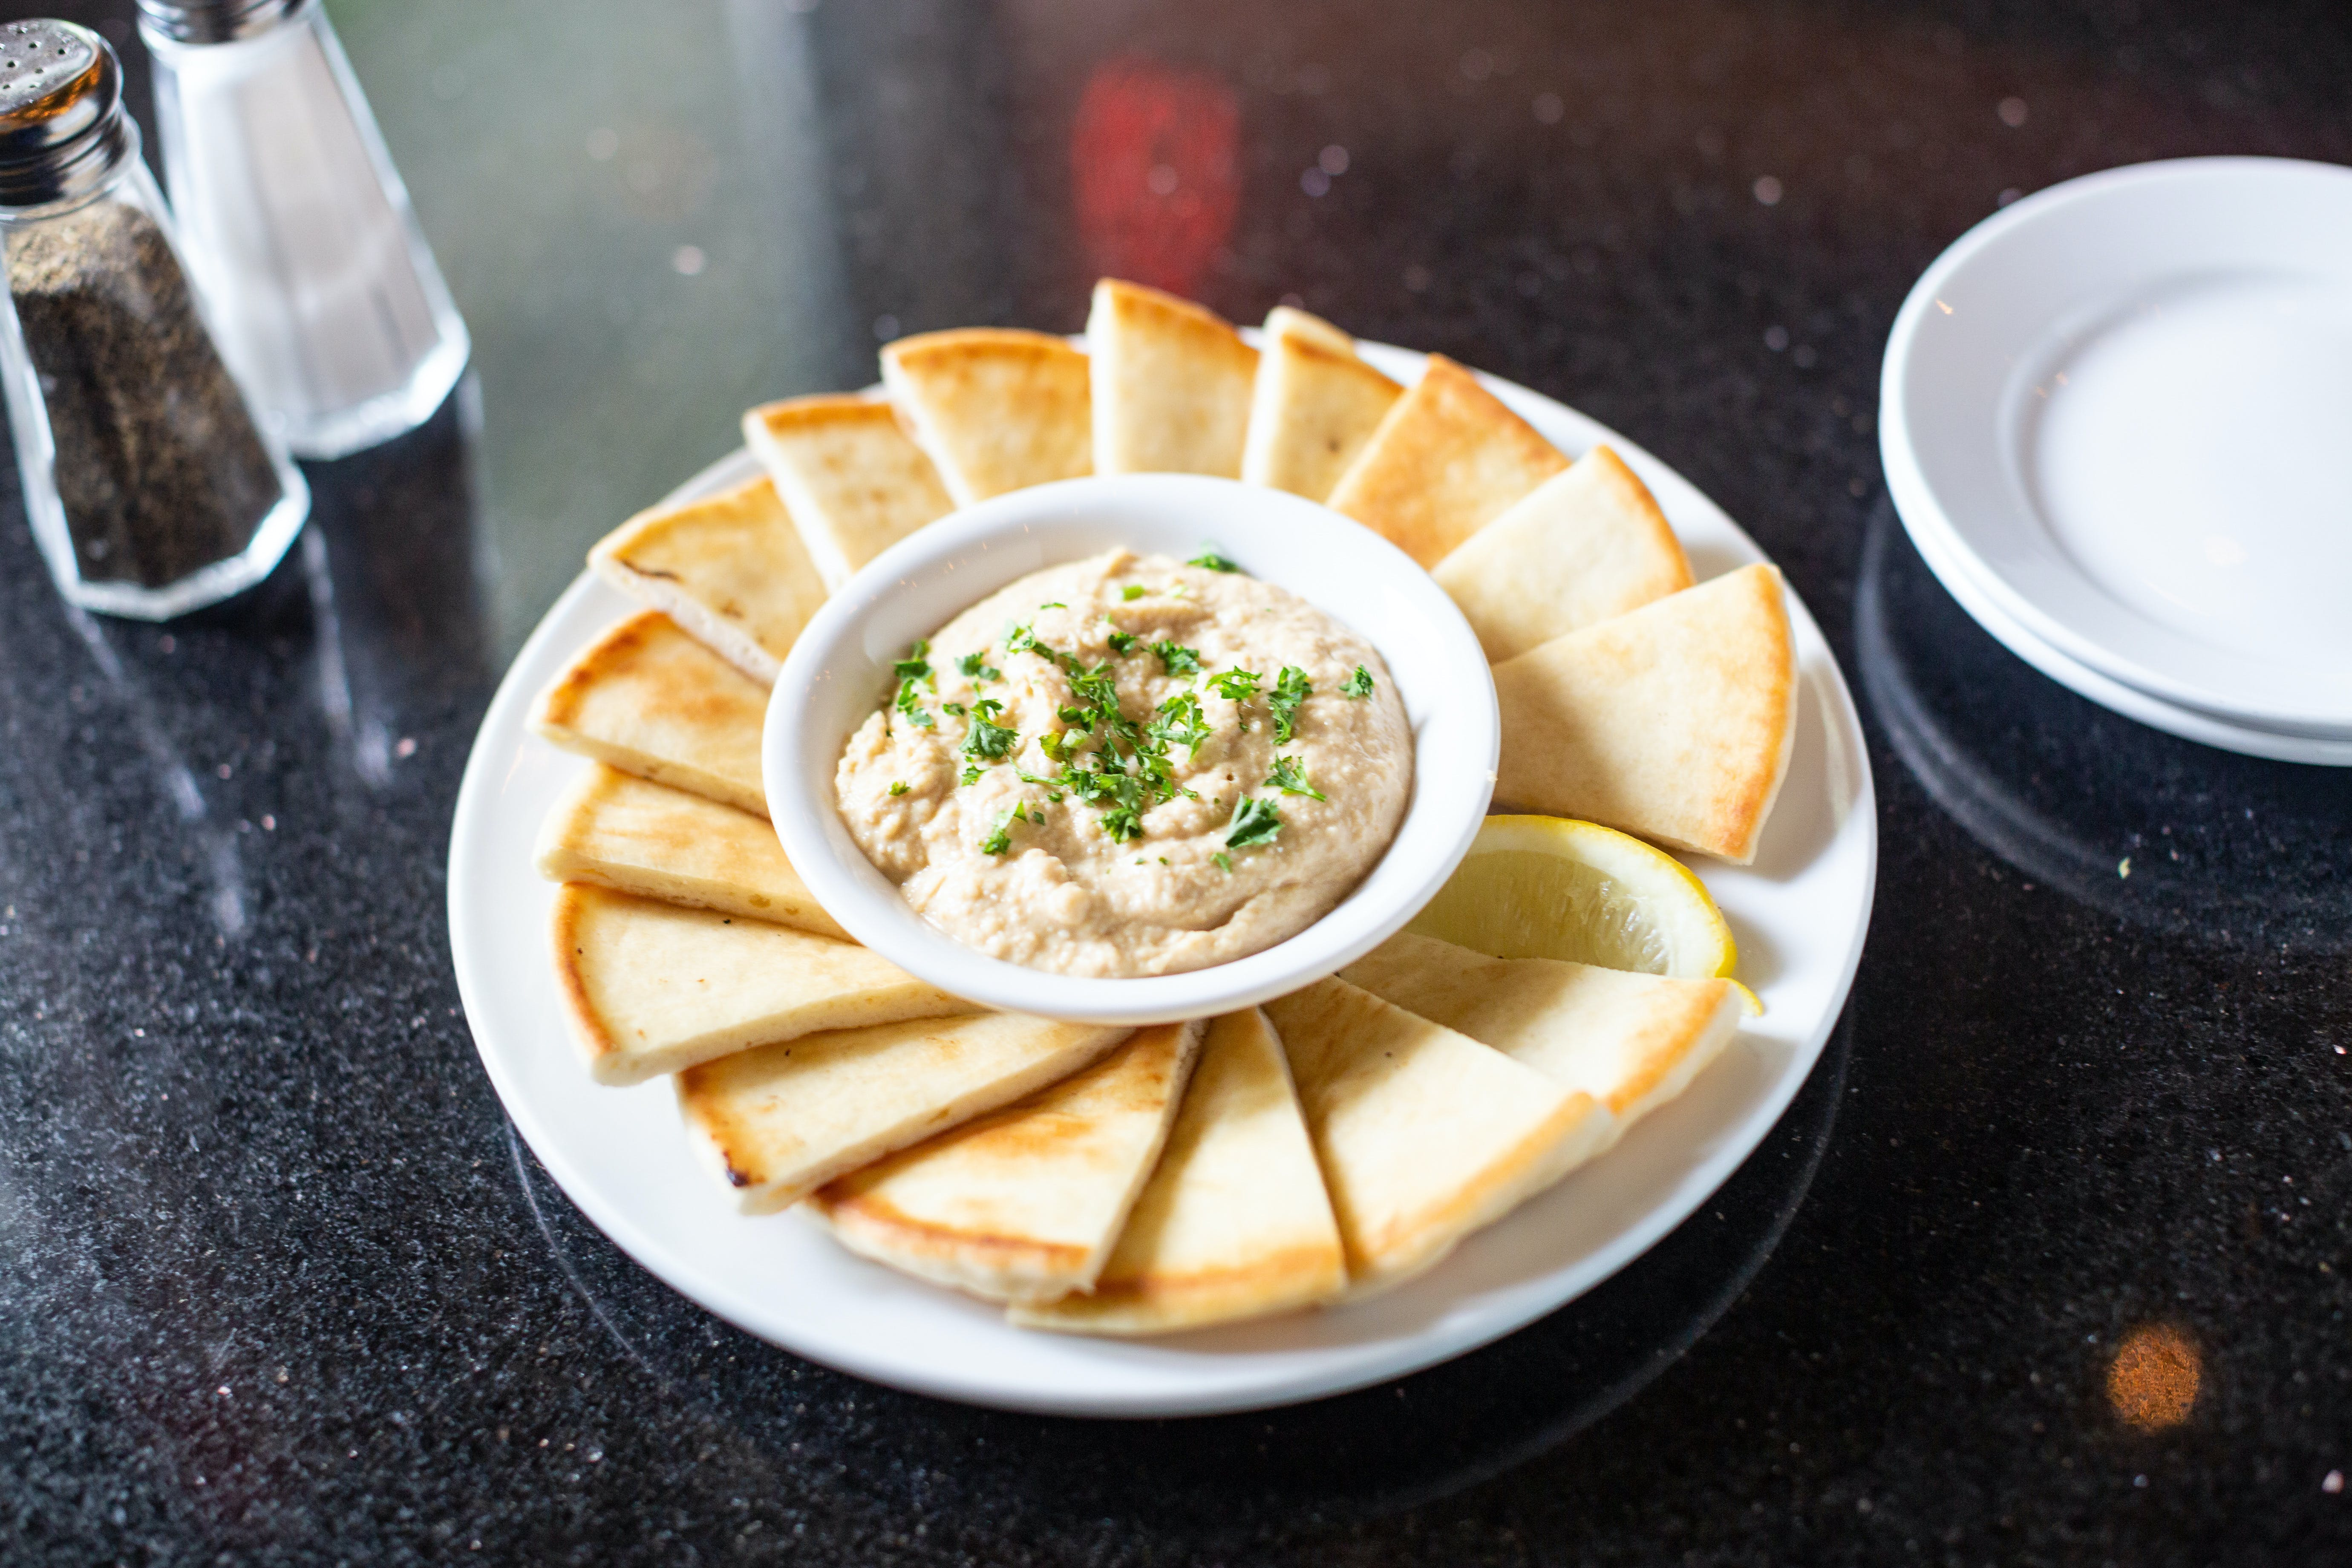 Kafteri (Hot Feta Dip) from The Mad Greek in Lawrence, KS